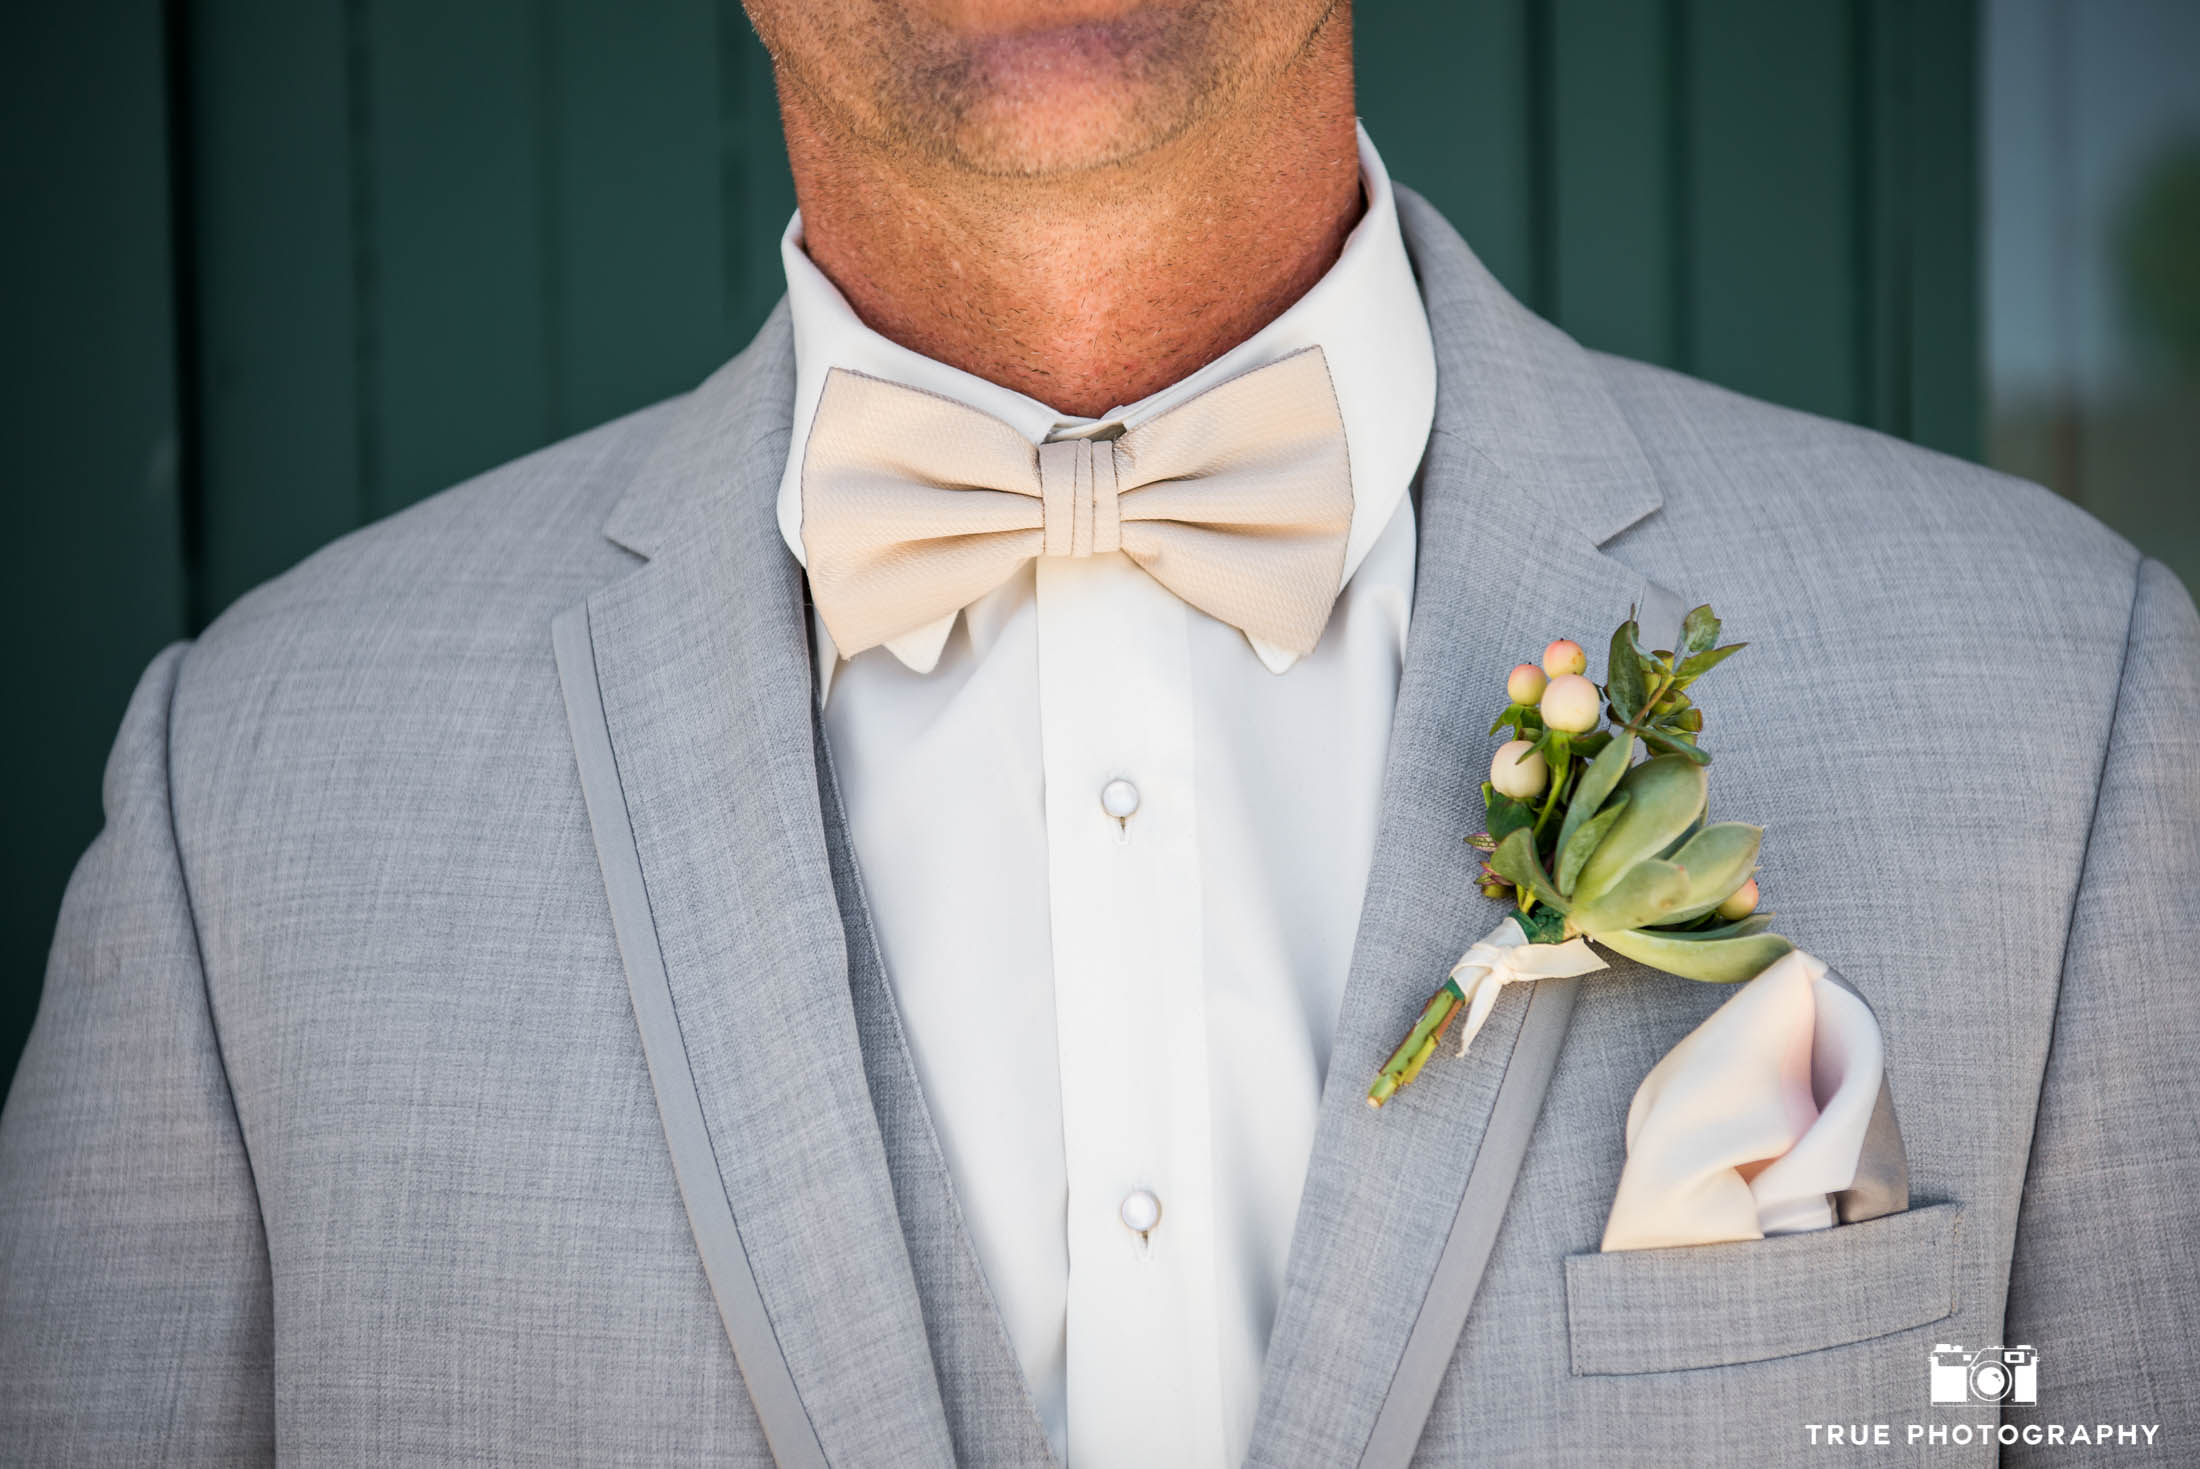 Close up of Groom's bow tie, boutonniere and pocket square